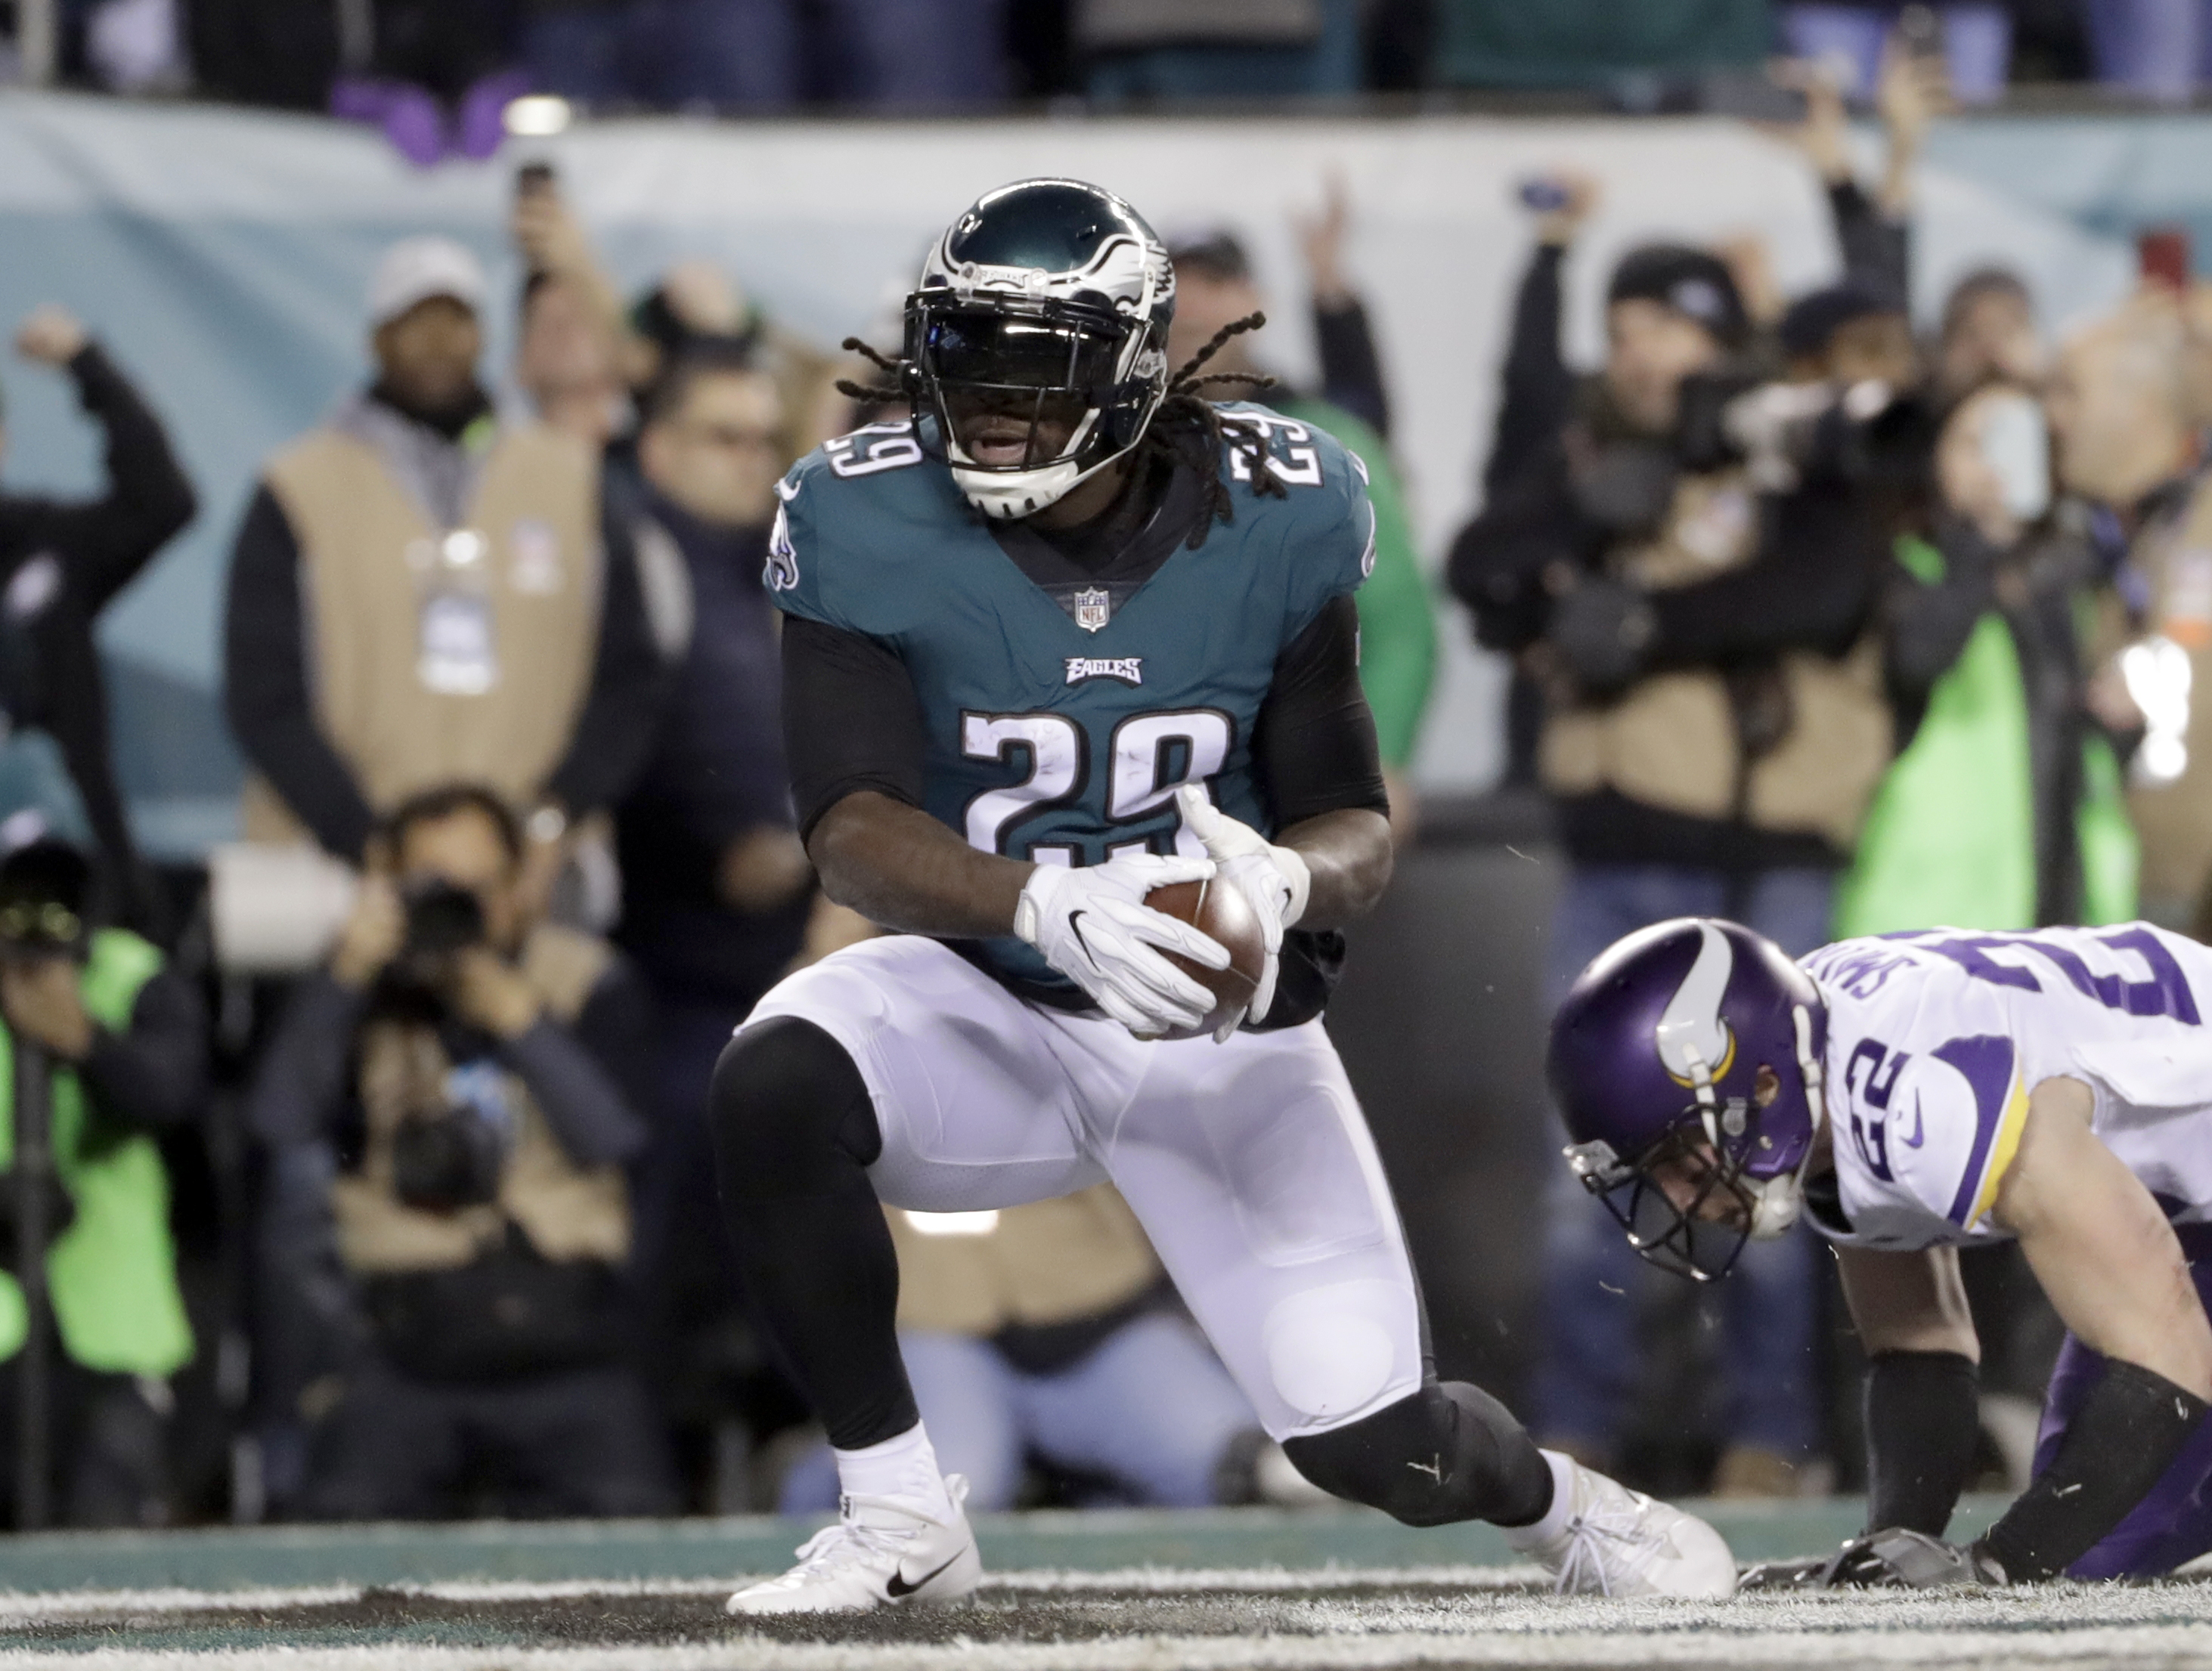 "<div class=""meta image-caption""><div class=""origin-logo origin-image ap""><span>AP</span></div><span class=""caption-text"">Philadelphia Eagles' LeGarrette Blount runs for a touchdown during the first half of the NFL football NFC championship game against the Minnesota Vikings Sunday, Jan. 21, 2018. (AP Photo/Matt Slocum)</span></div>"